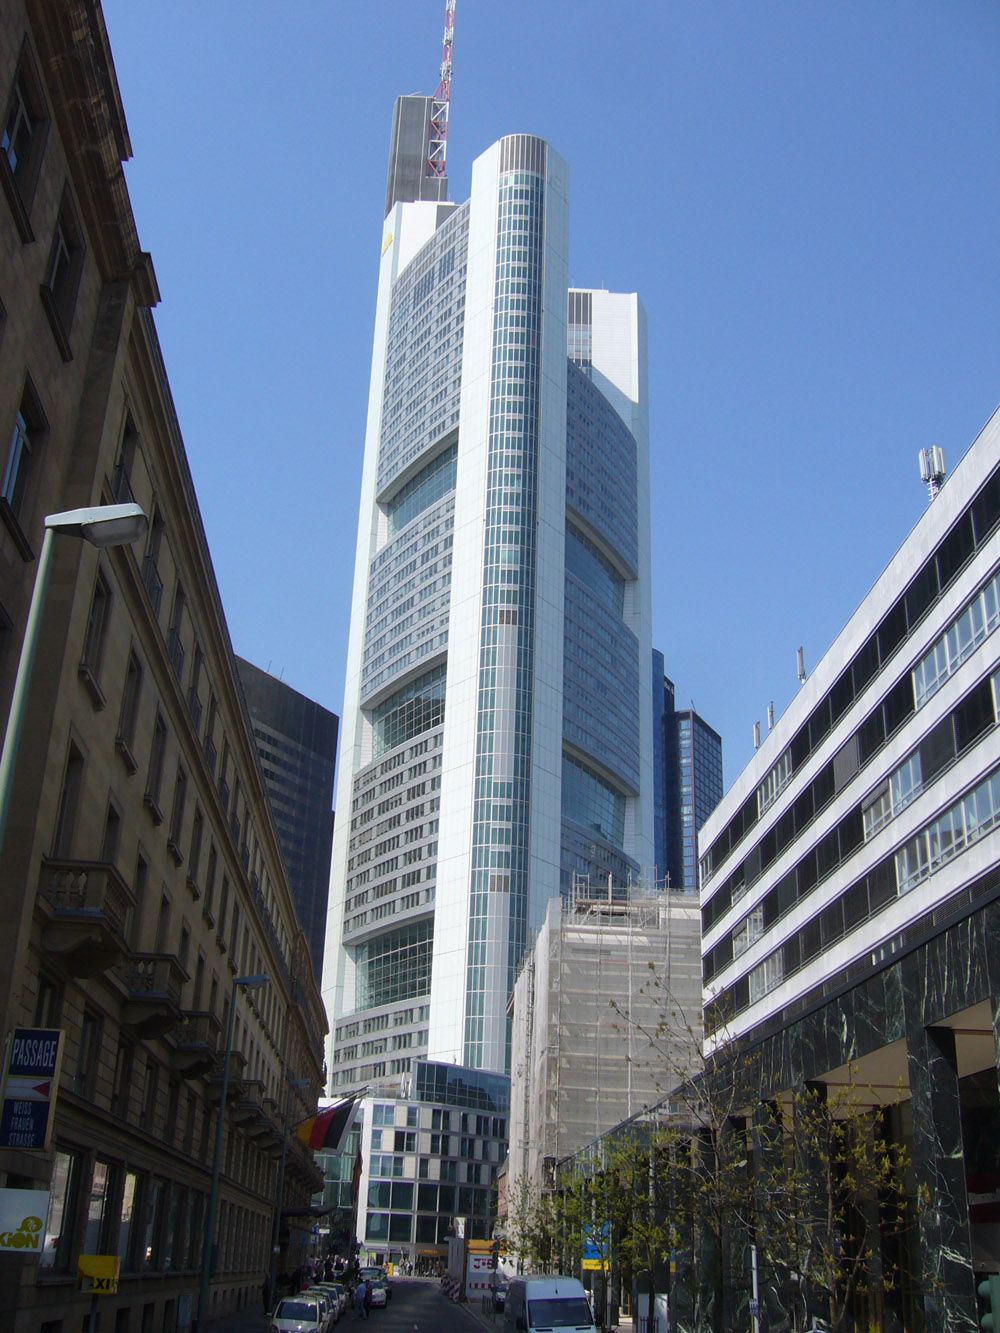 frankfurt germany buildings Google Search Architecture